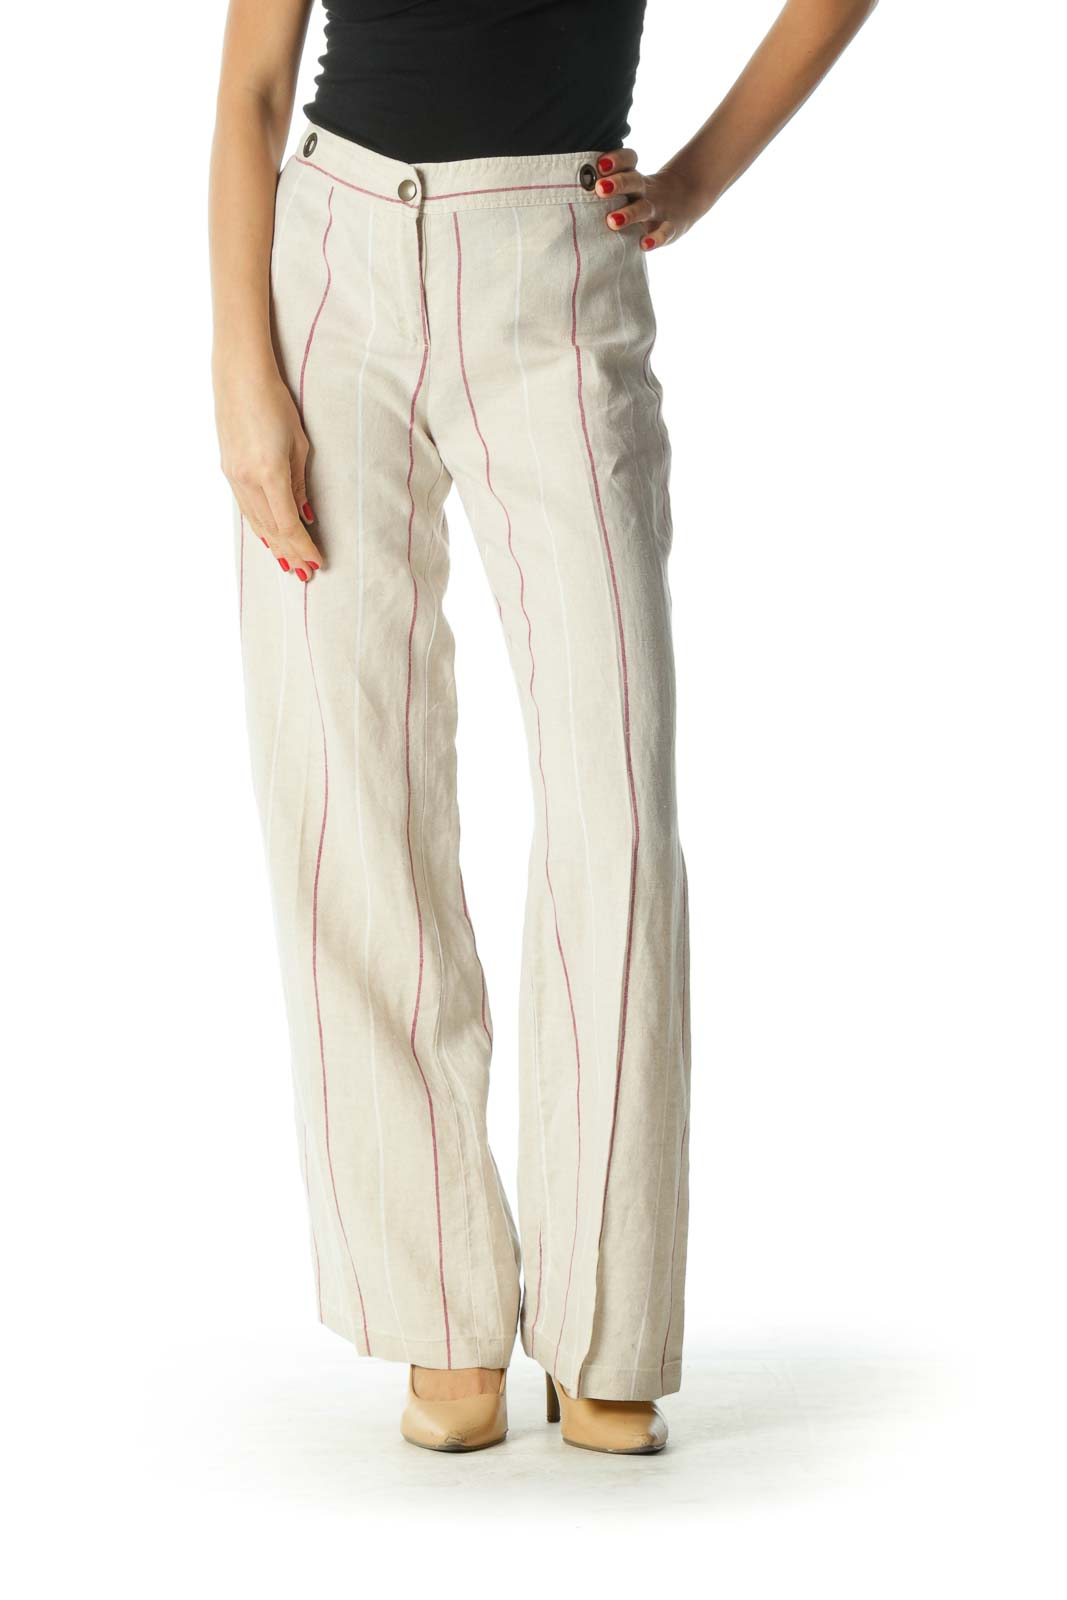 Cream and Burgundy Striped Wide Leg Pants Front